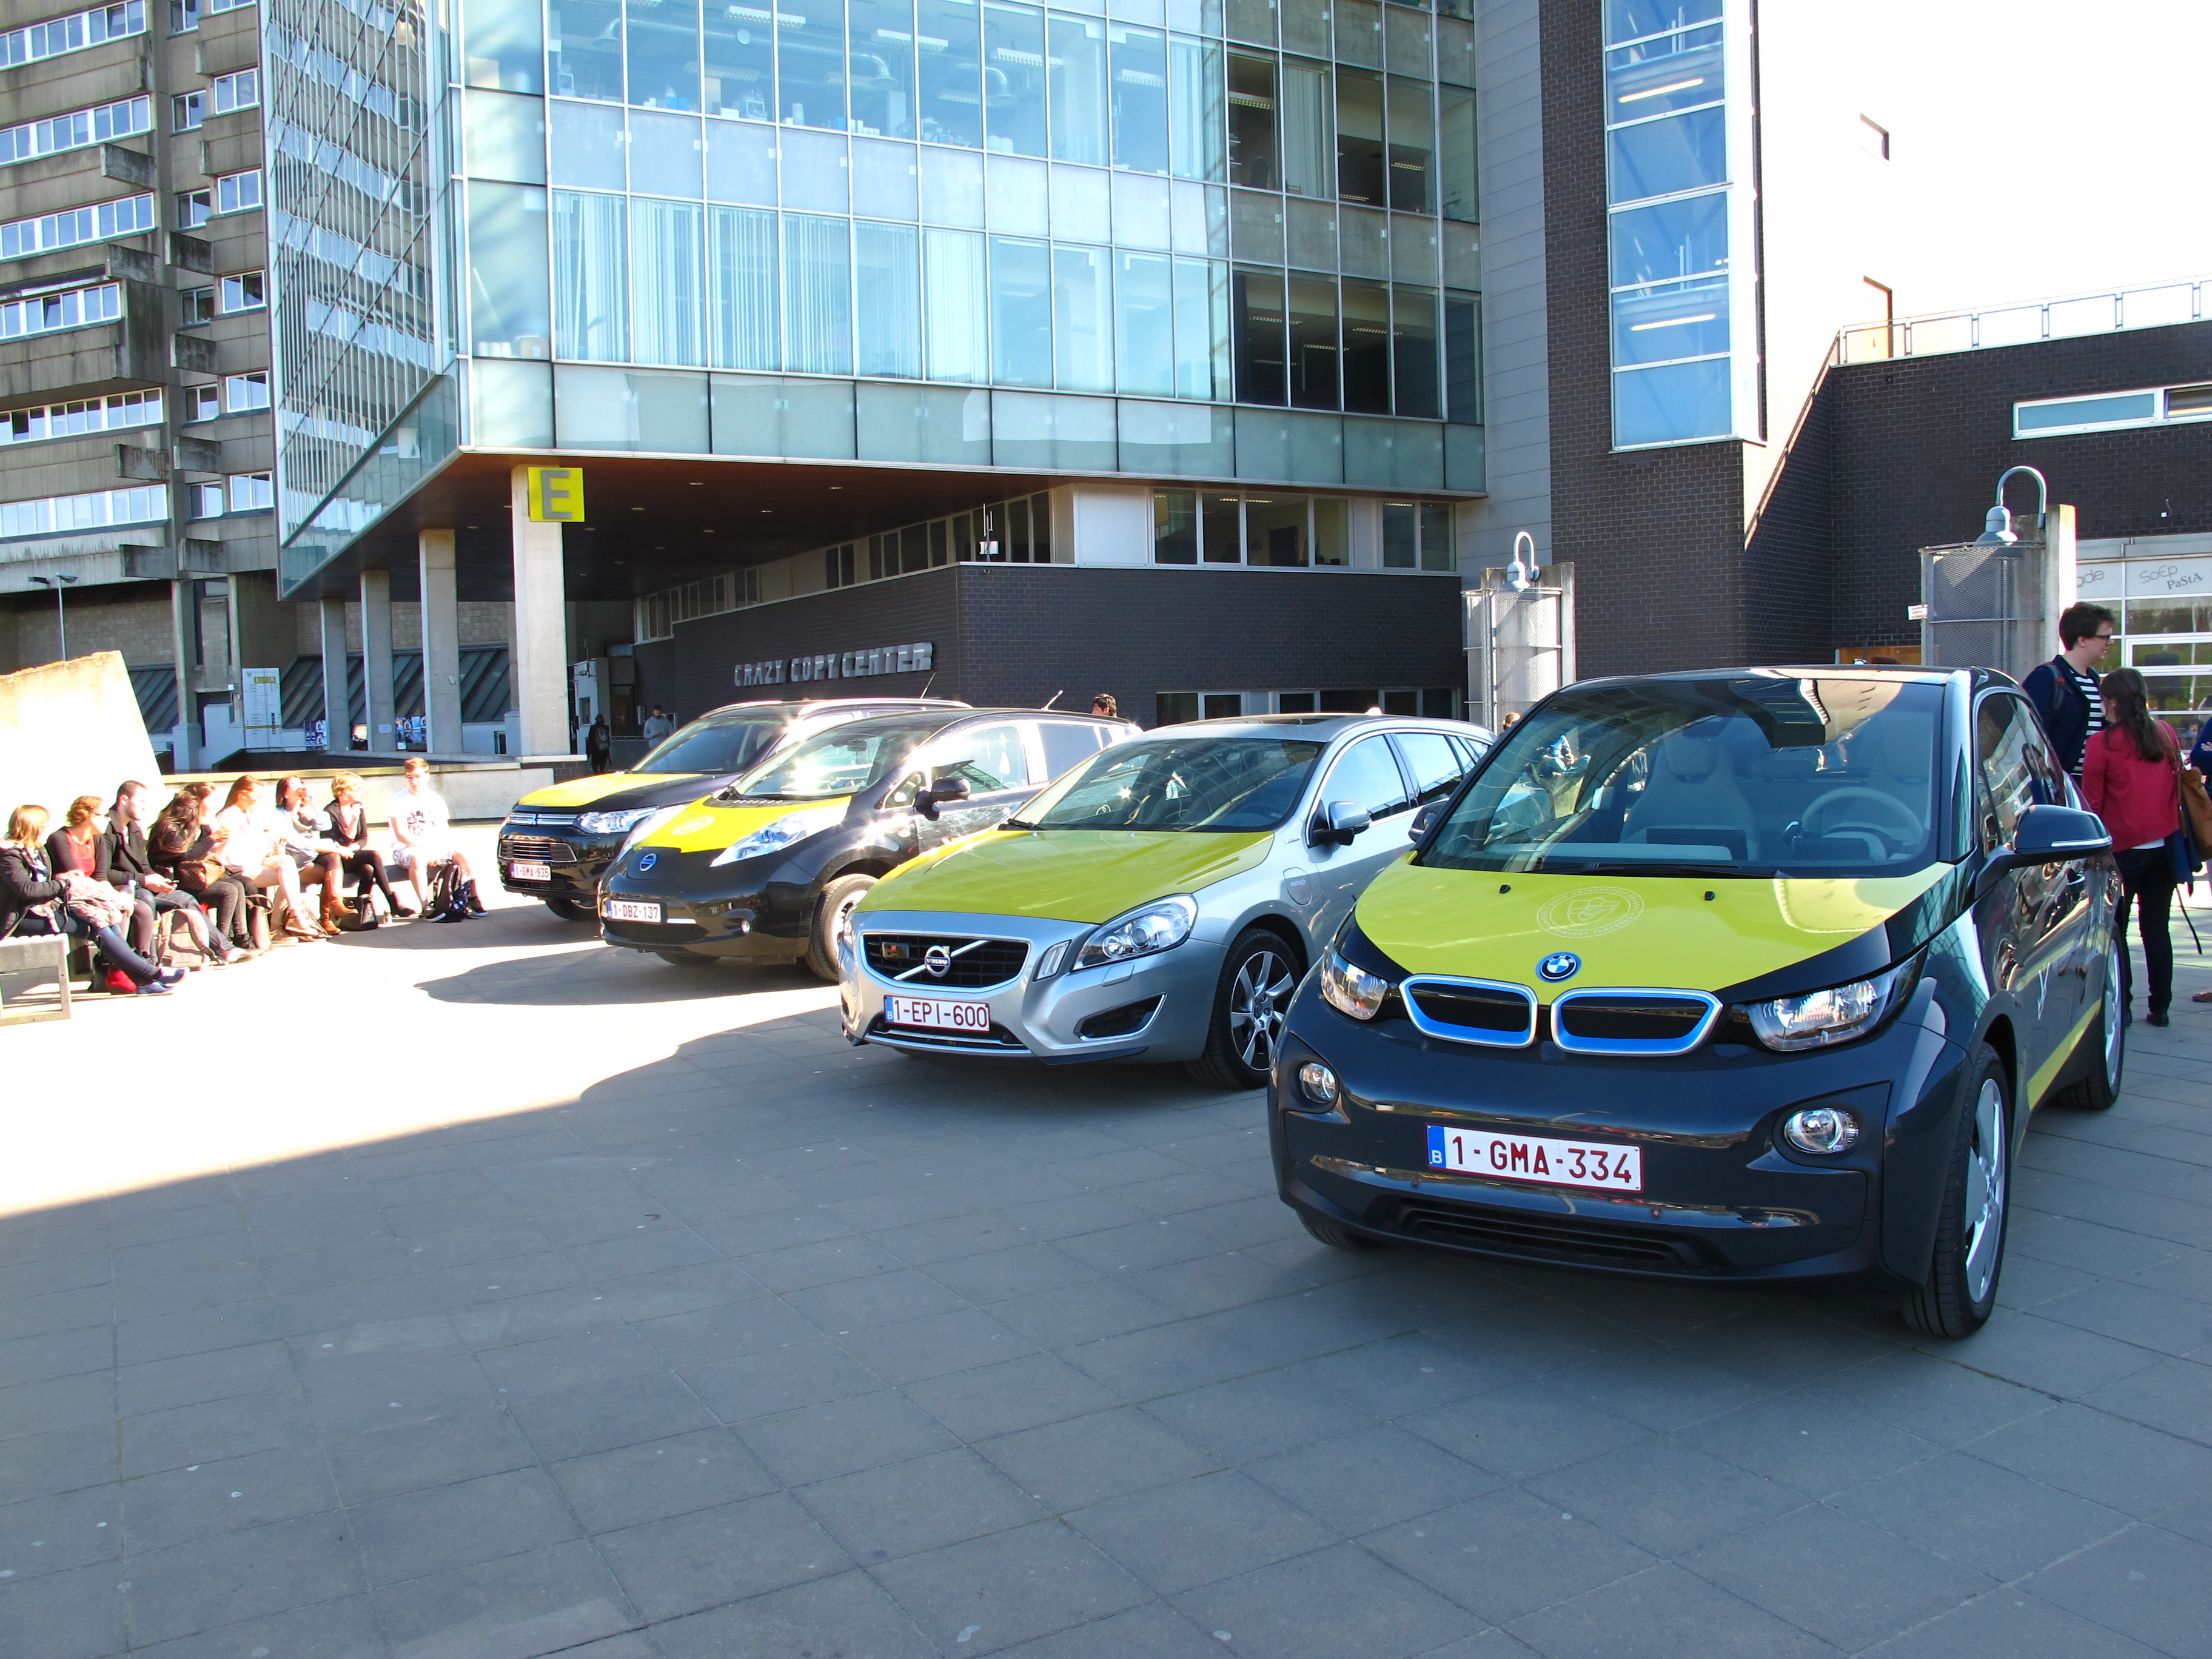 electric and hybrid vehicles at vub humanities campus